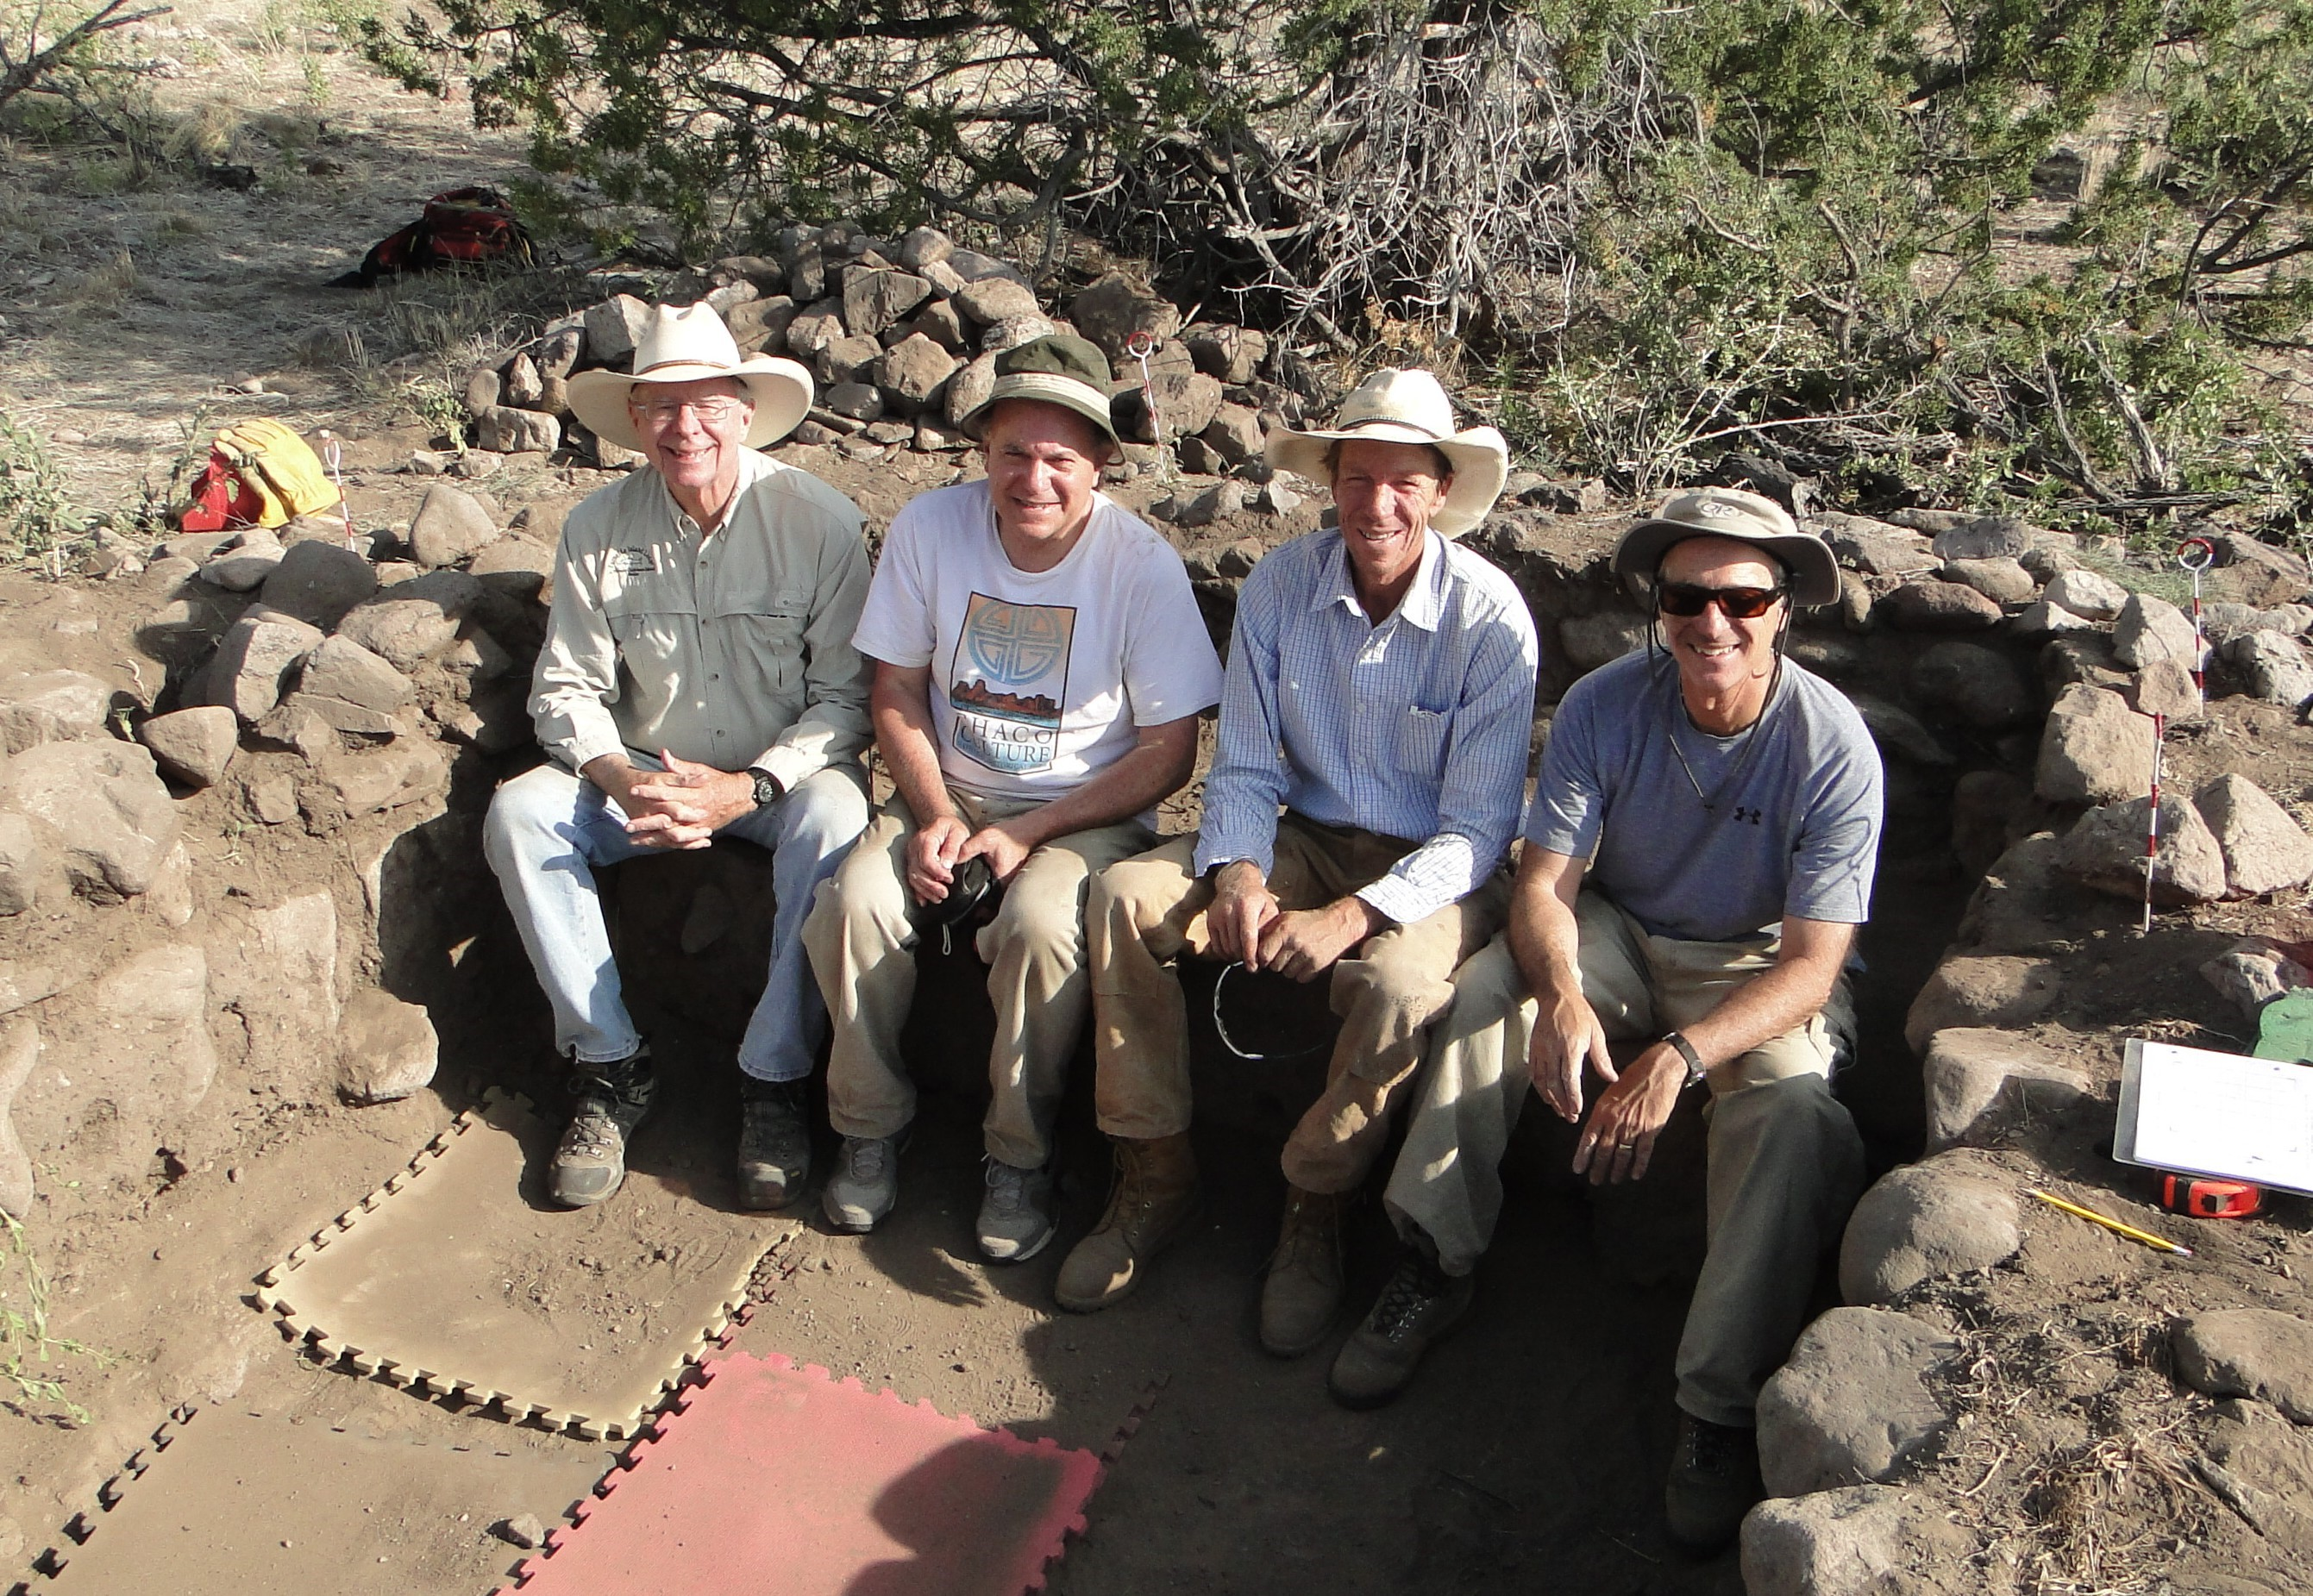 Four team members pose sitting in a recess in the earth surrounded by stone foundation.